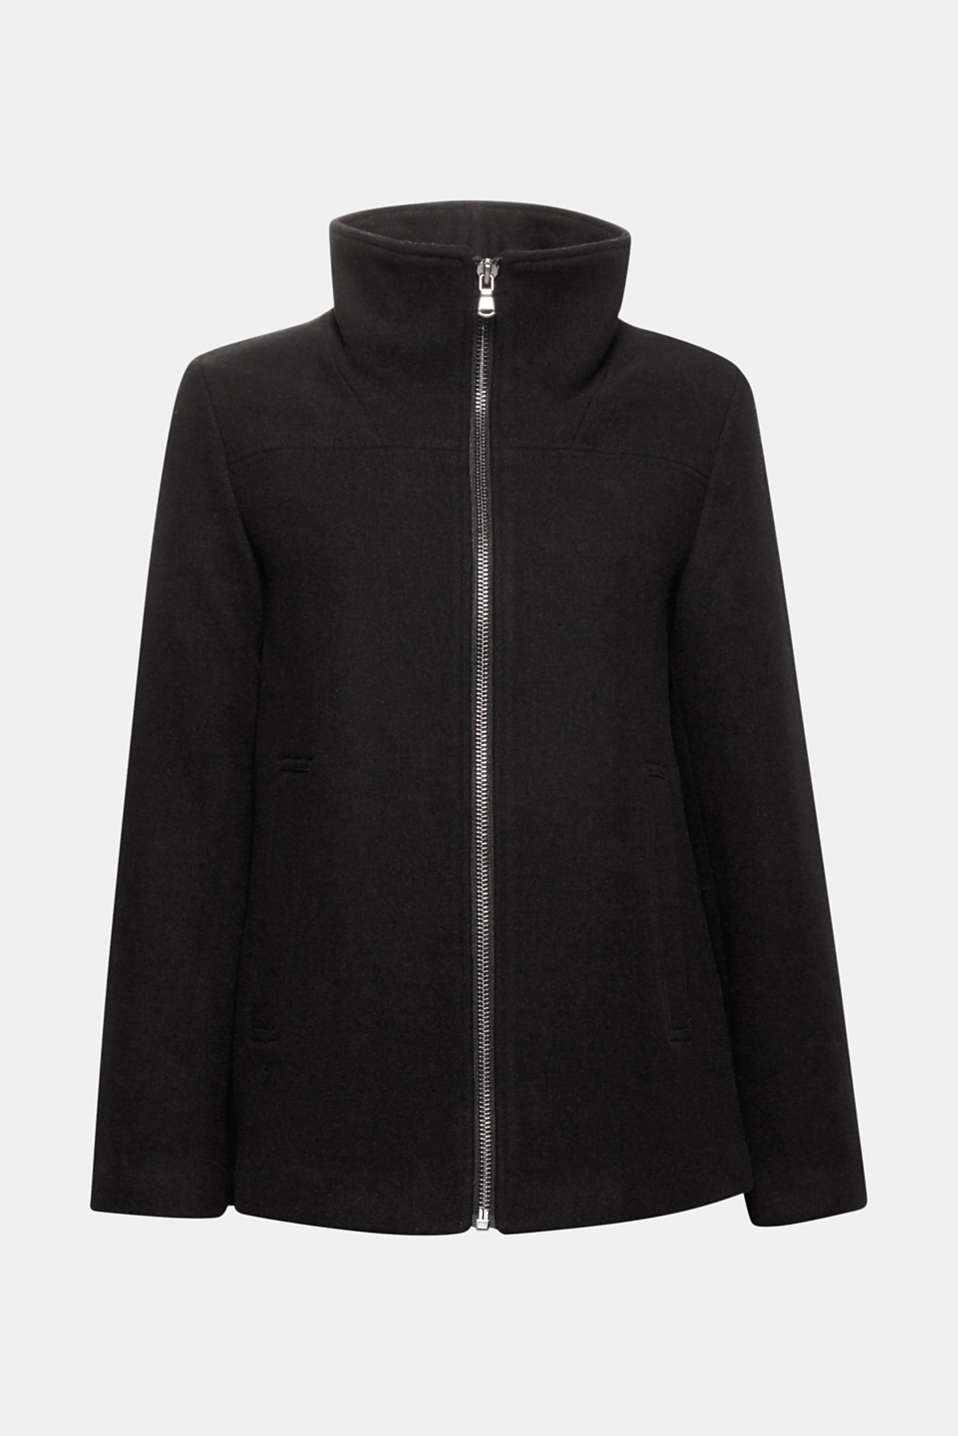 This jacket in blended wool with a subtle A-line cut, high collar and practical zip is timelessly modern!